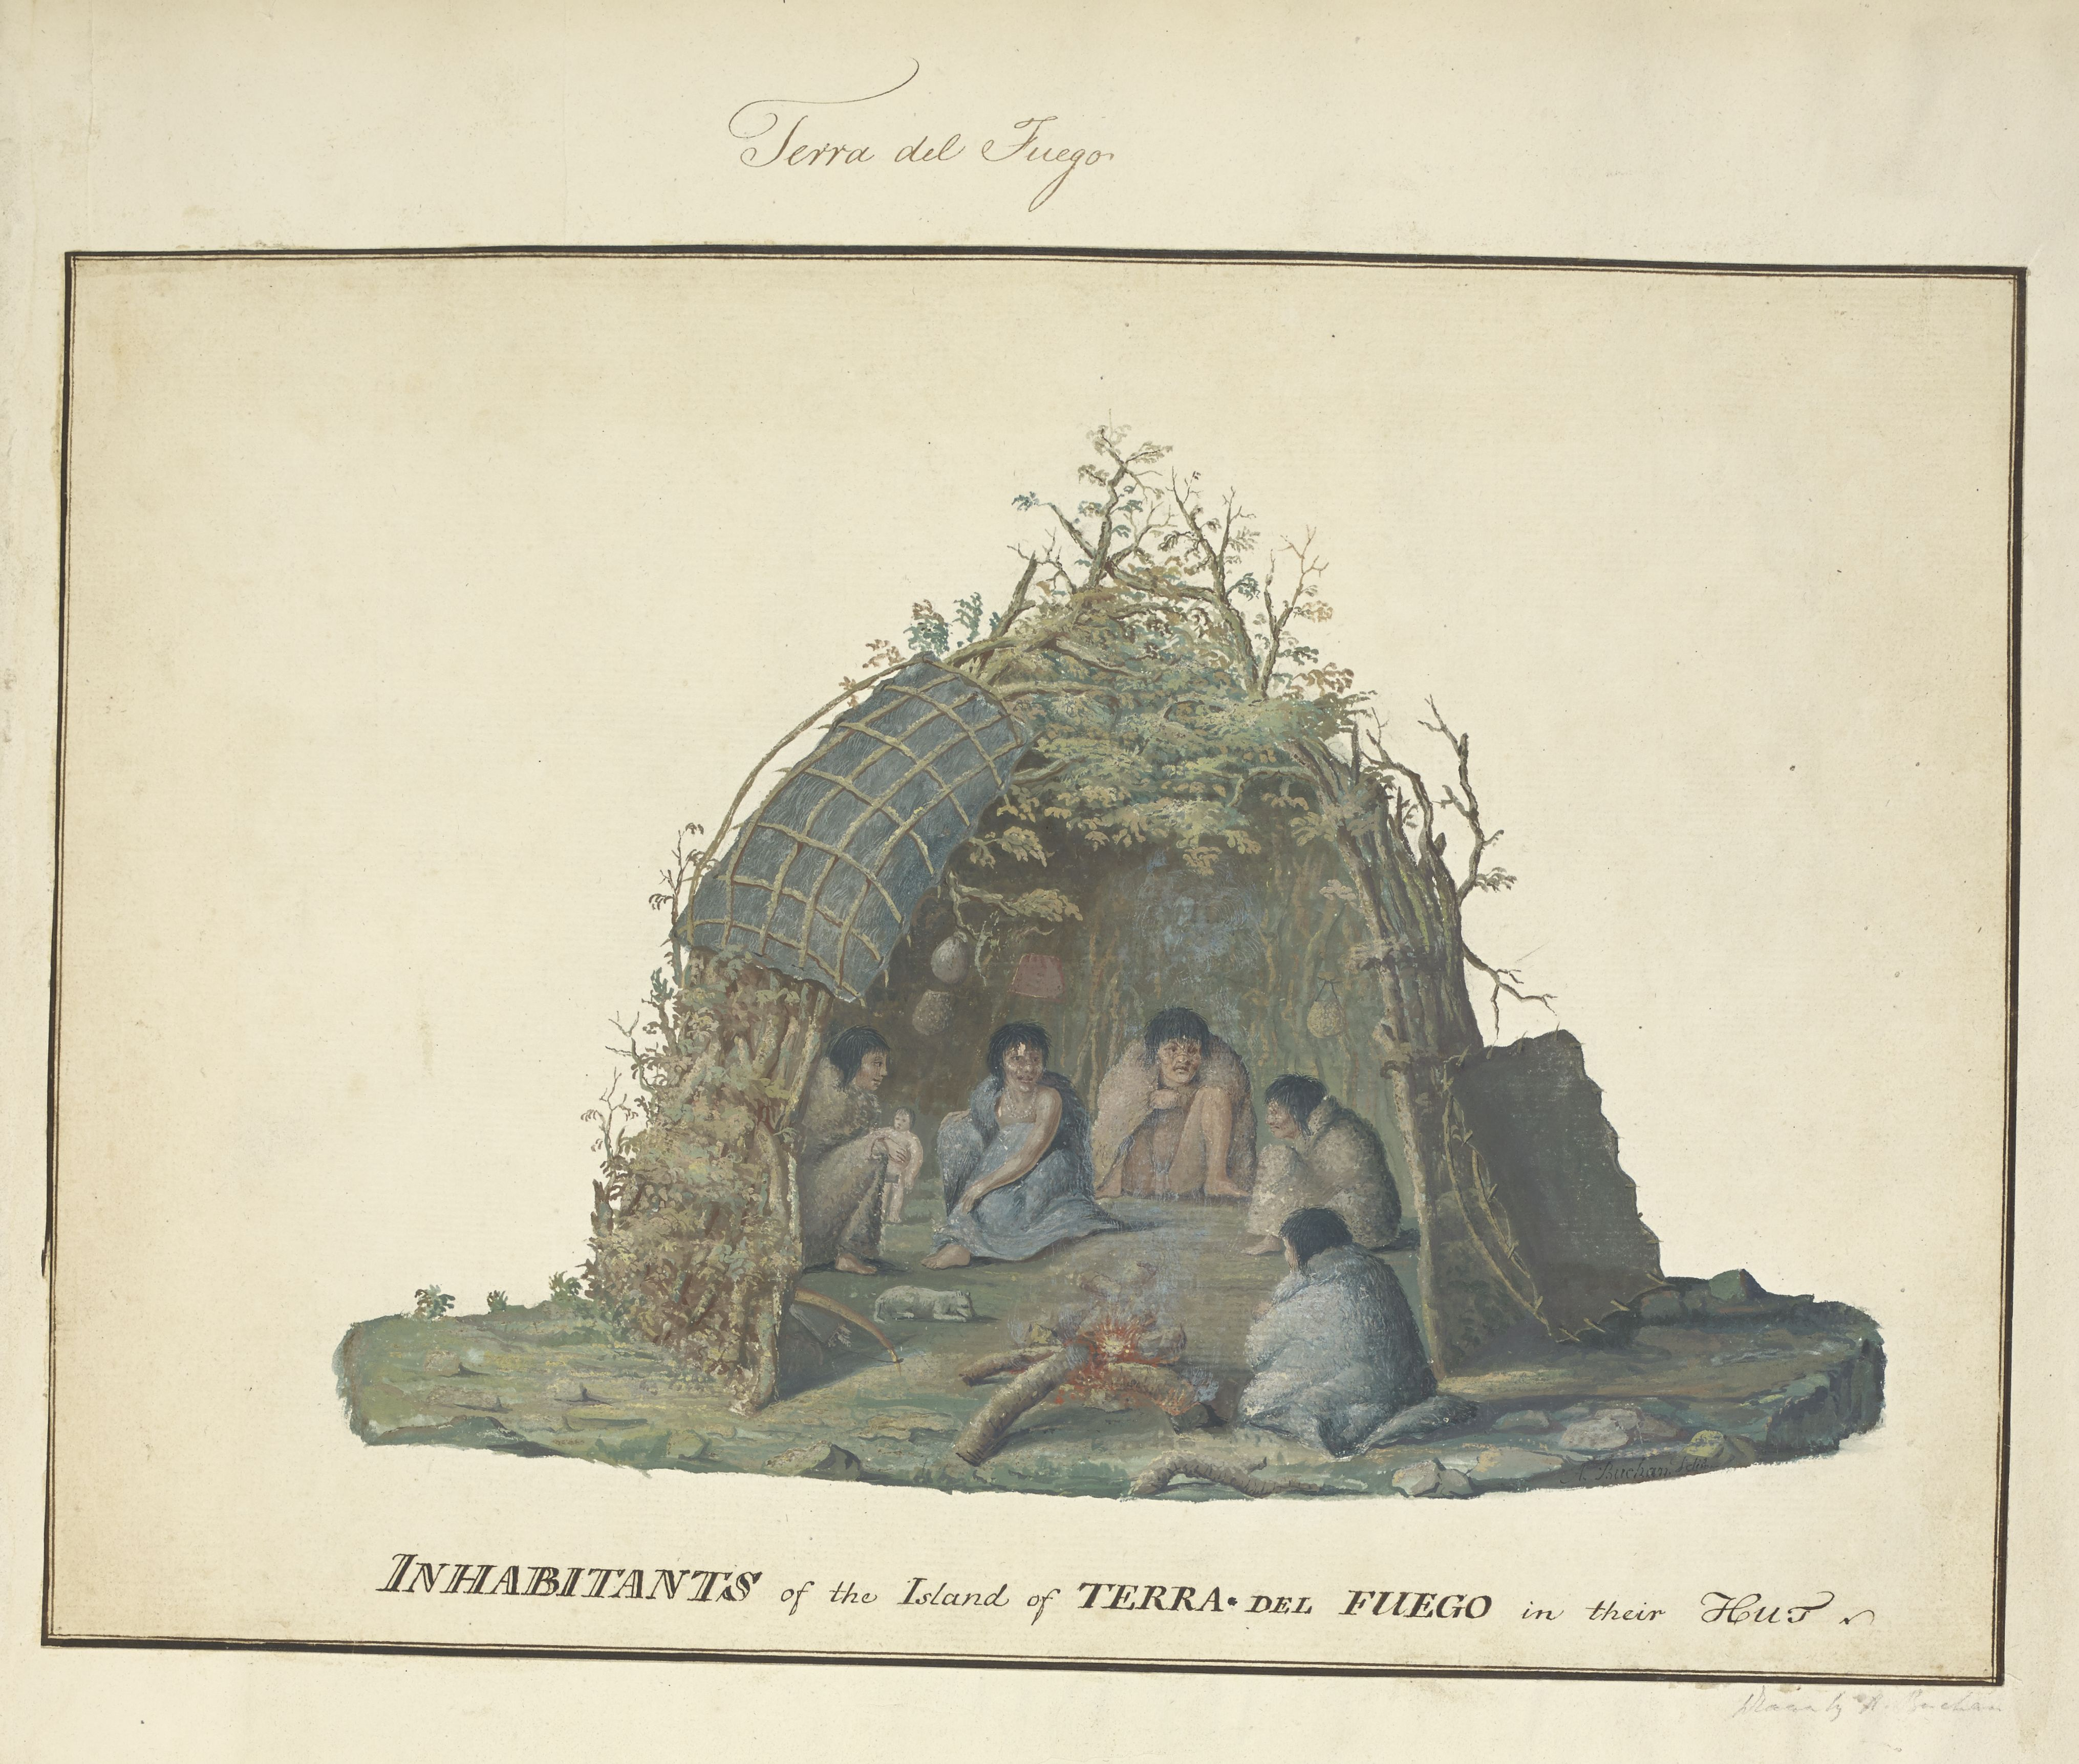 'Inhabitants of the Island of Terra del Fuego in their Hut' by Alexander Buchan, 1769 (c) British Library Board